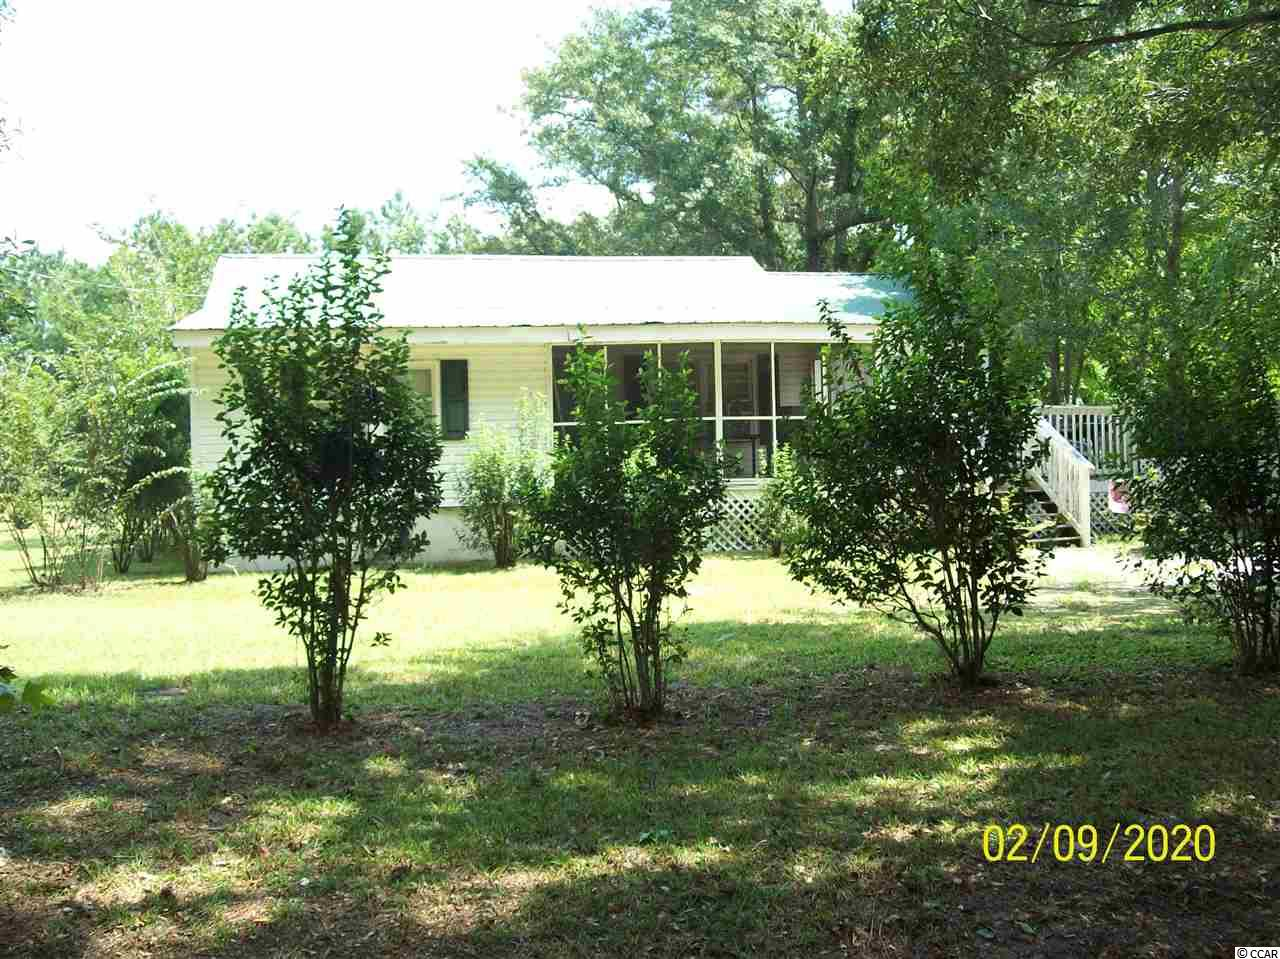 NEAT, PEACEFUL 3BR HOME SOUTH OF GEORGETOWN, NICE FRONT PORCH, MTH. TO MTH. TENANT, GREAT PRICE!!!!!